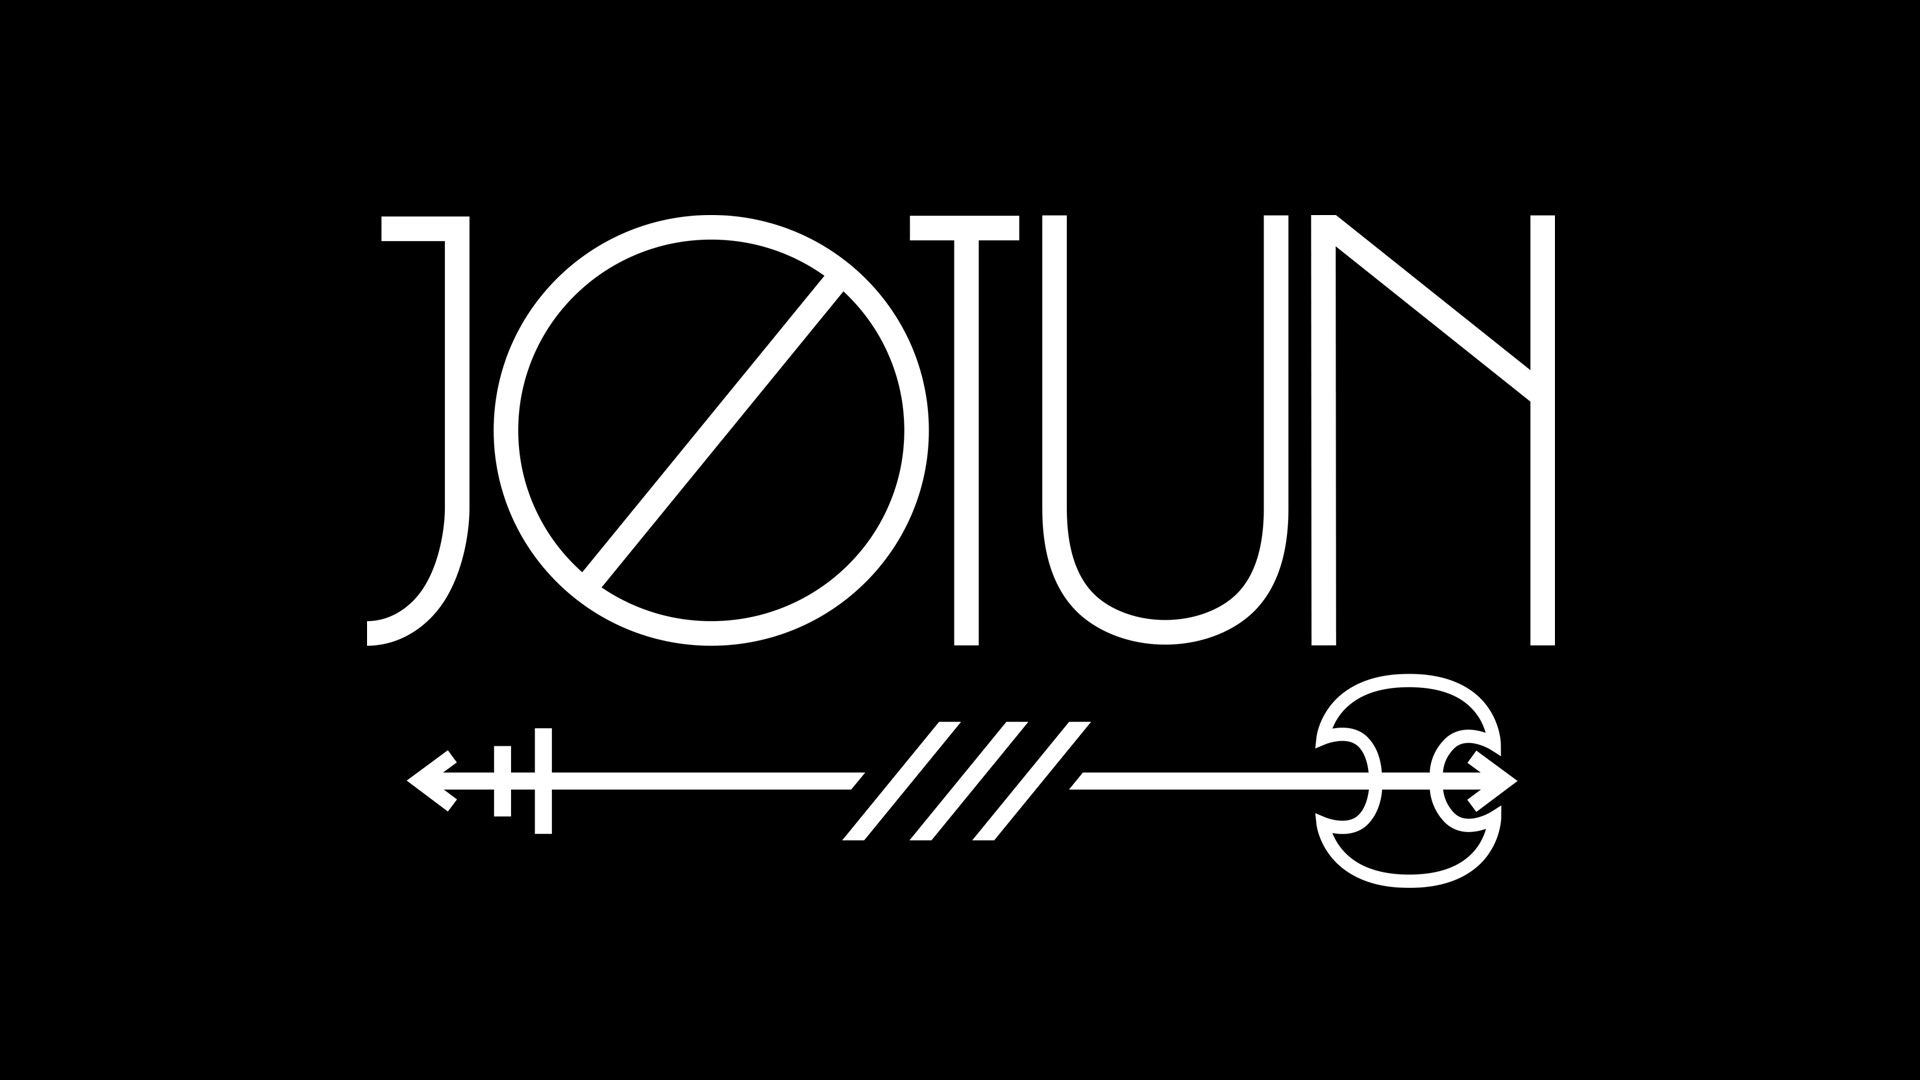 https://linuxgameconsortium.com/2015/10/01/jotun_action_adventure_exploration_launches_for_linux_mac_and_windows_pc/